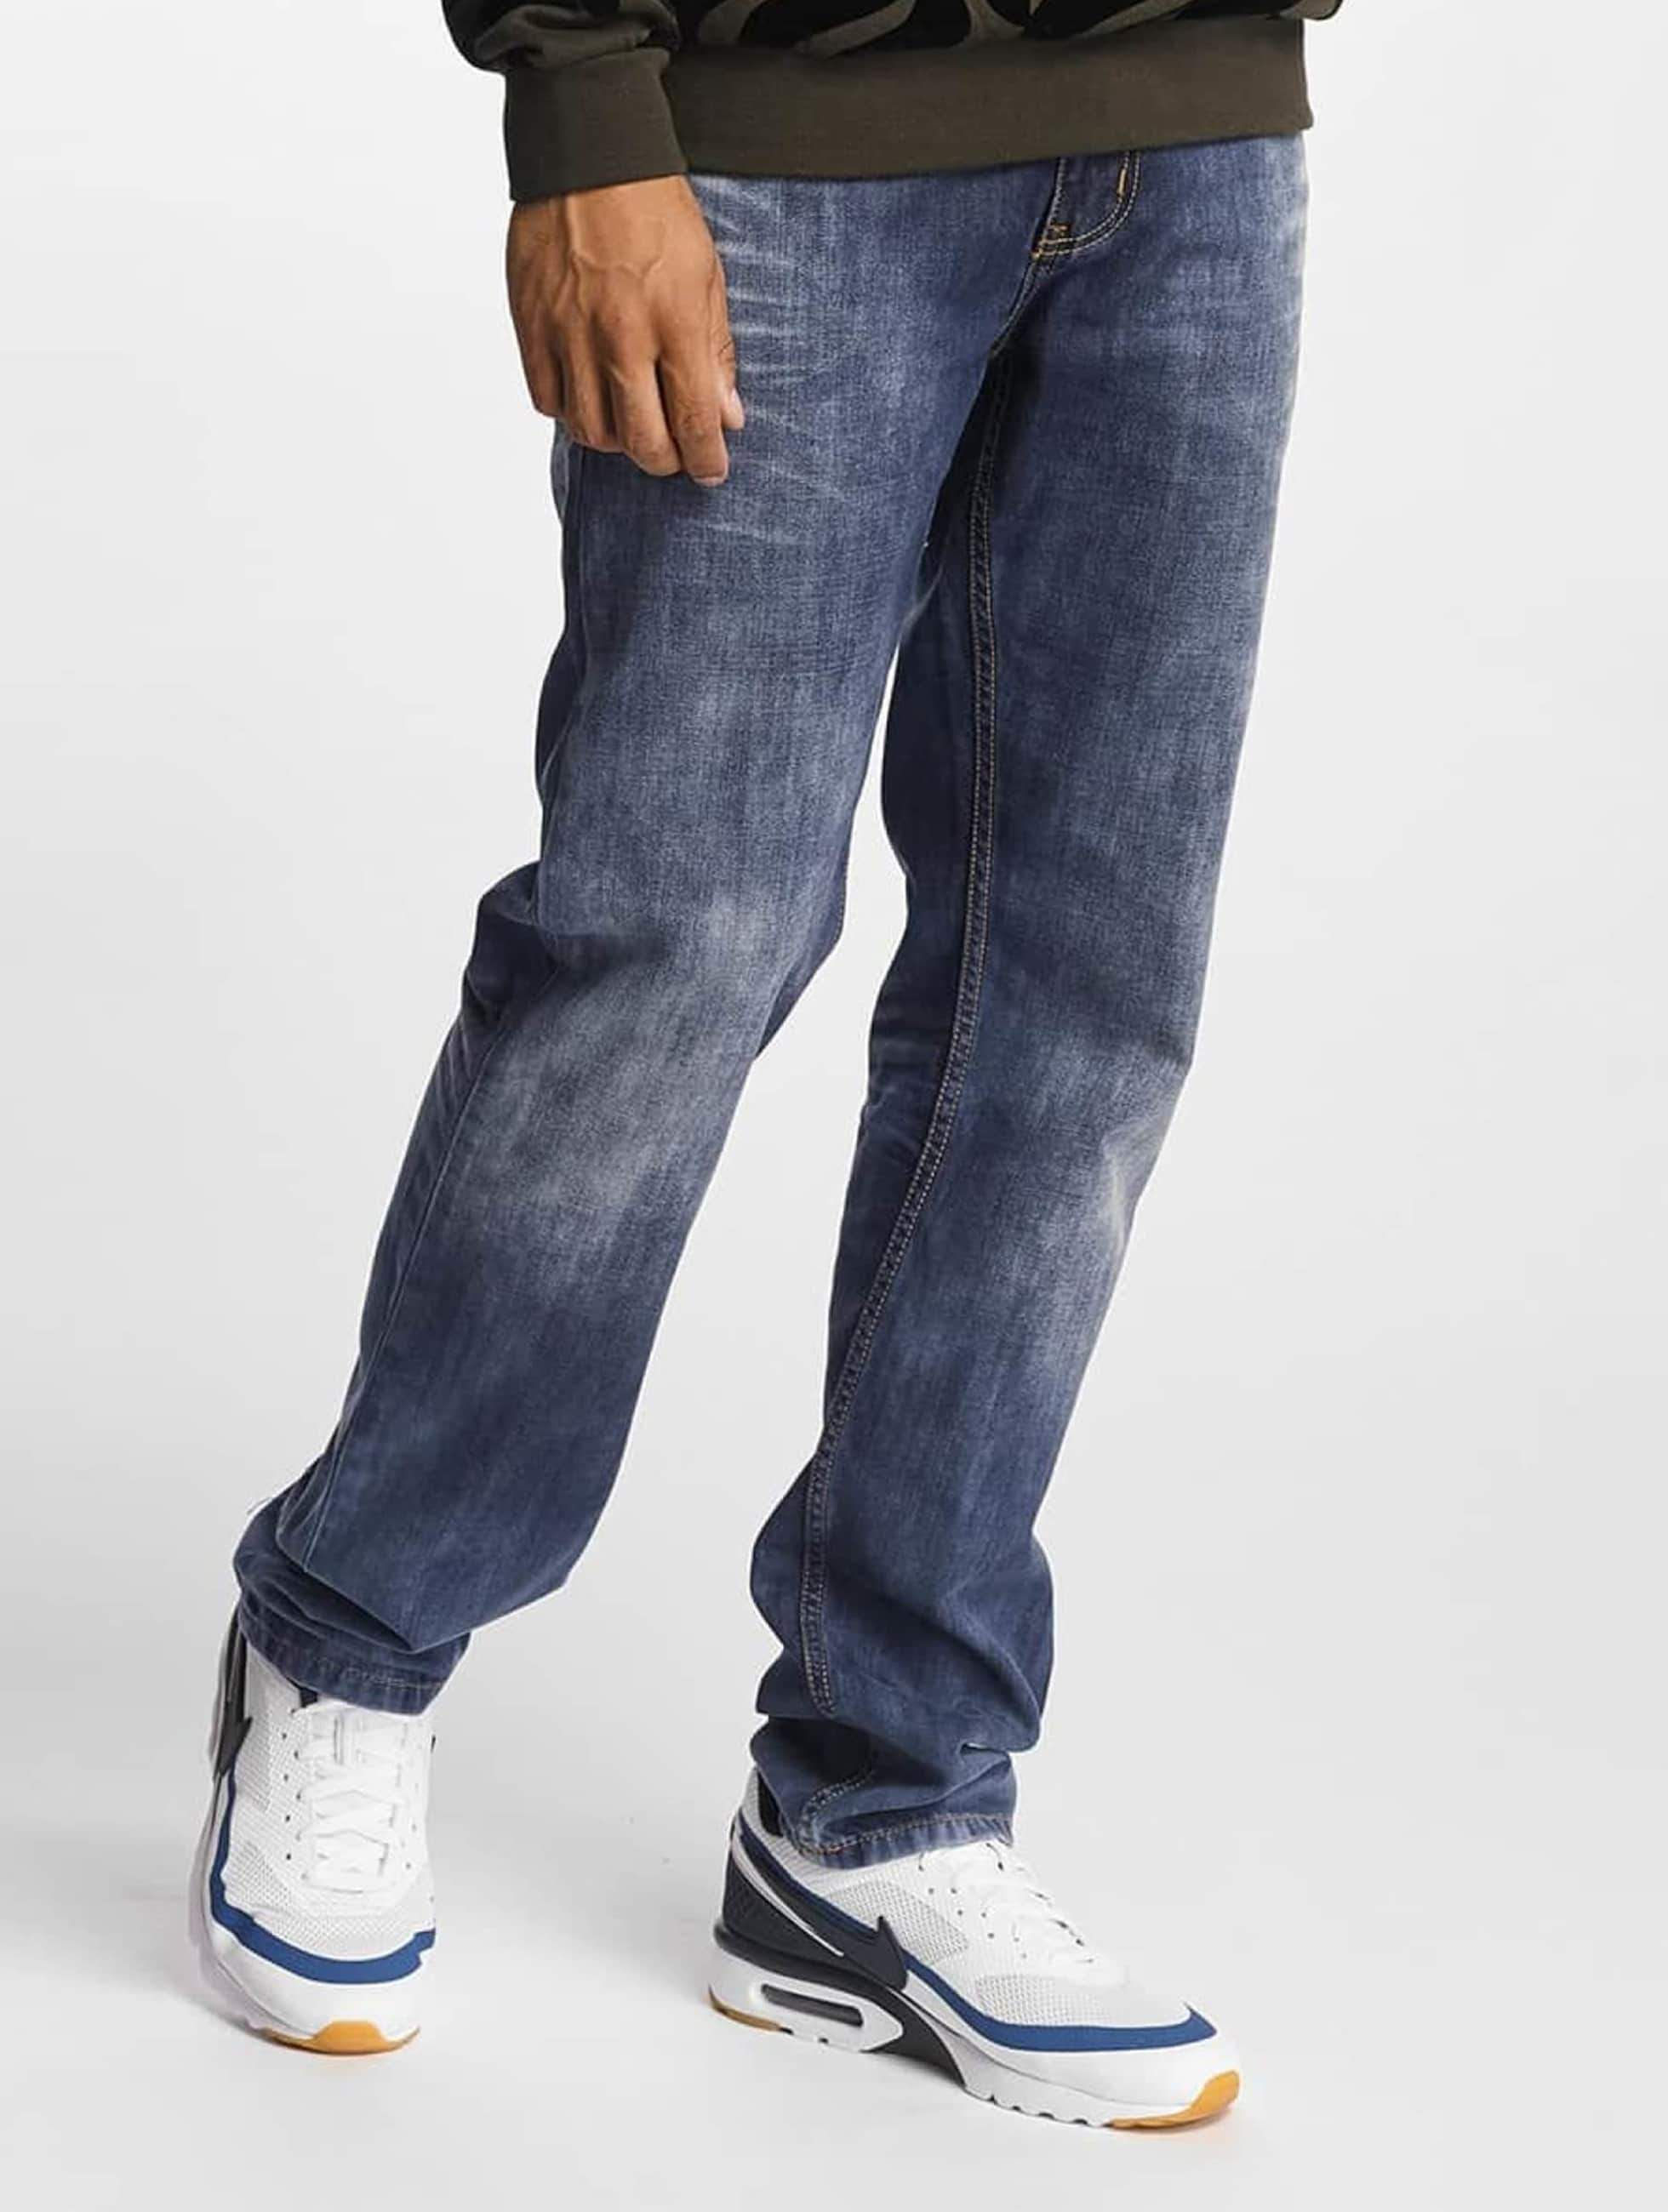 Rocawear / Straight Fit Jeans Relax in blue W 32